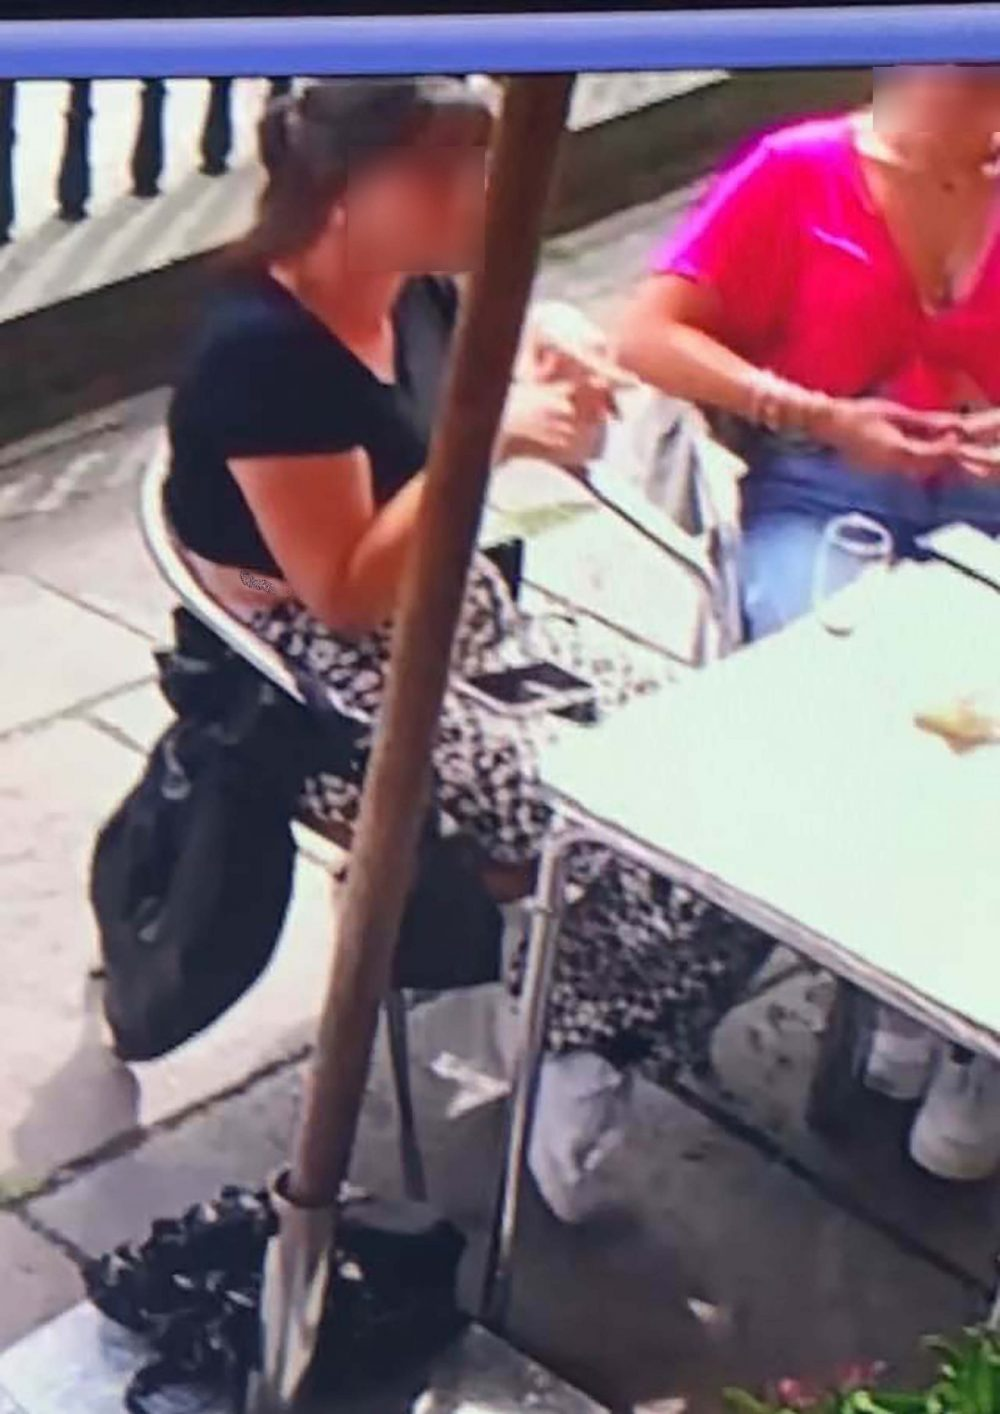 Maxies Bistro CCTV outside - Food and Drink News Scotland